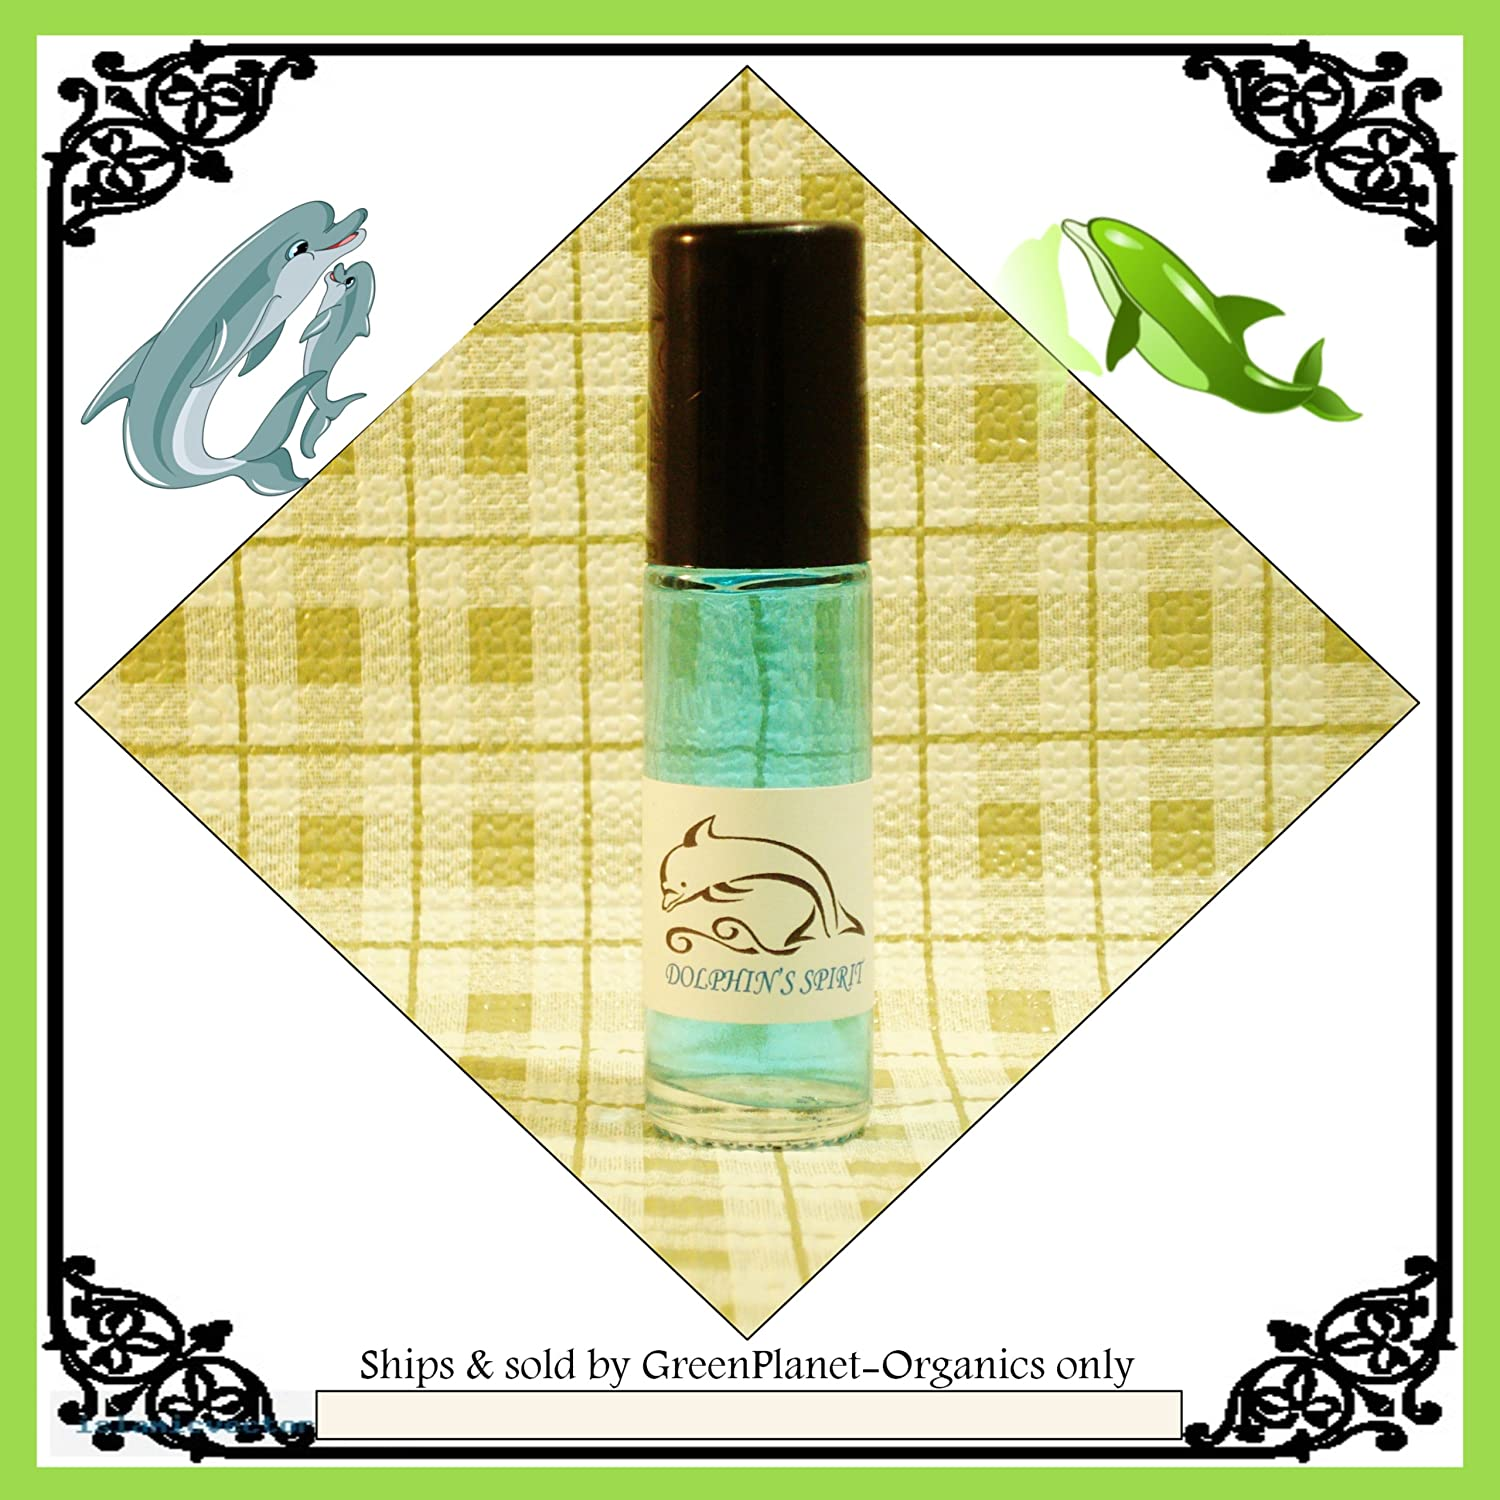 Dolphin's Spirit Fragrance Oil (Represents Freedom, Loyalty & Compassion)